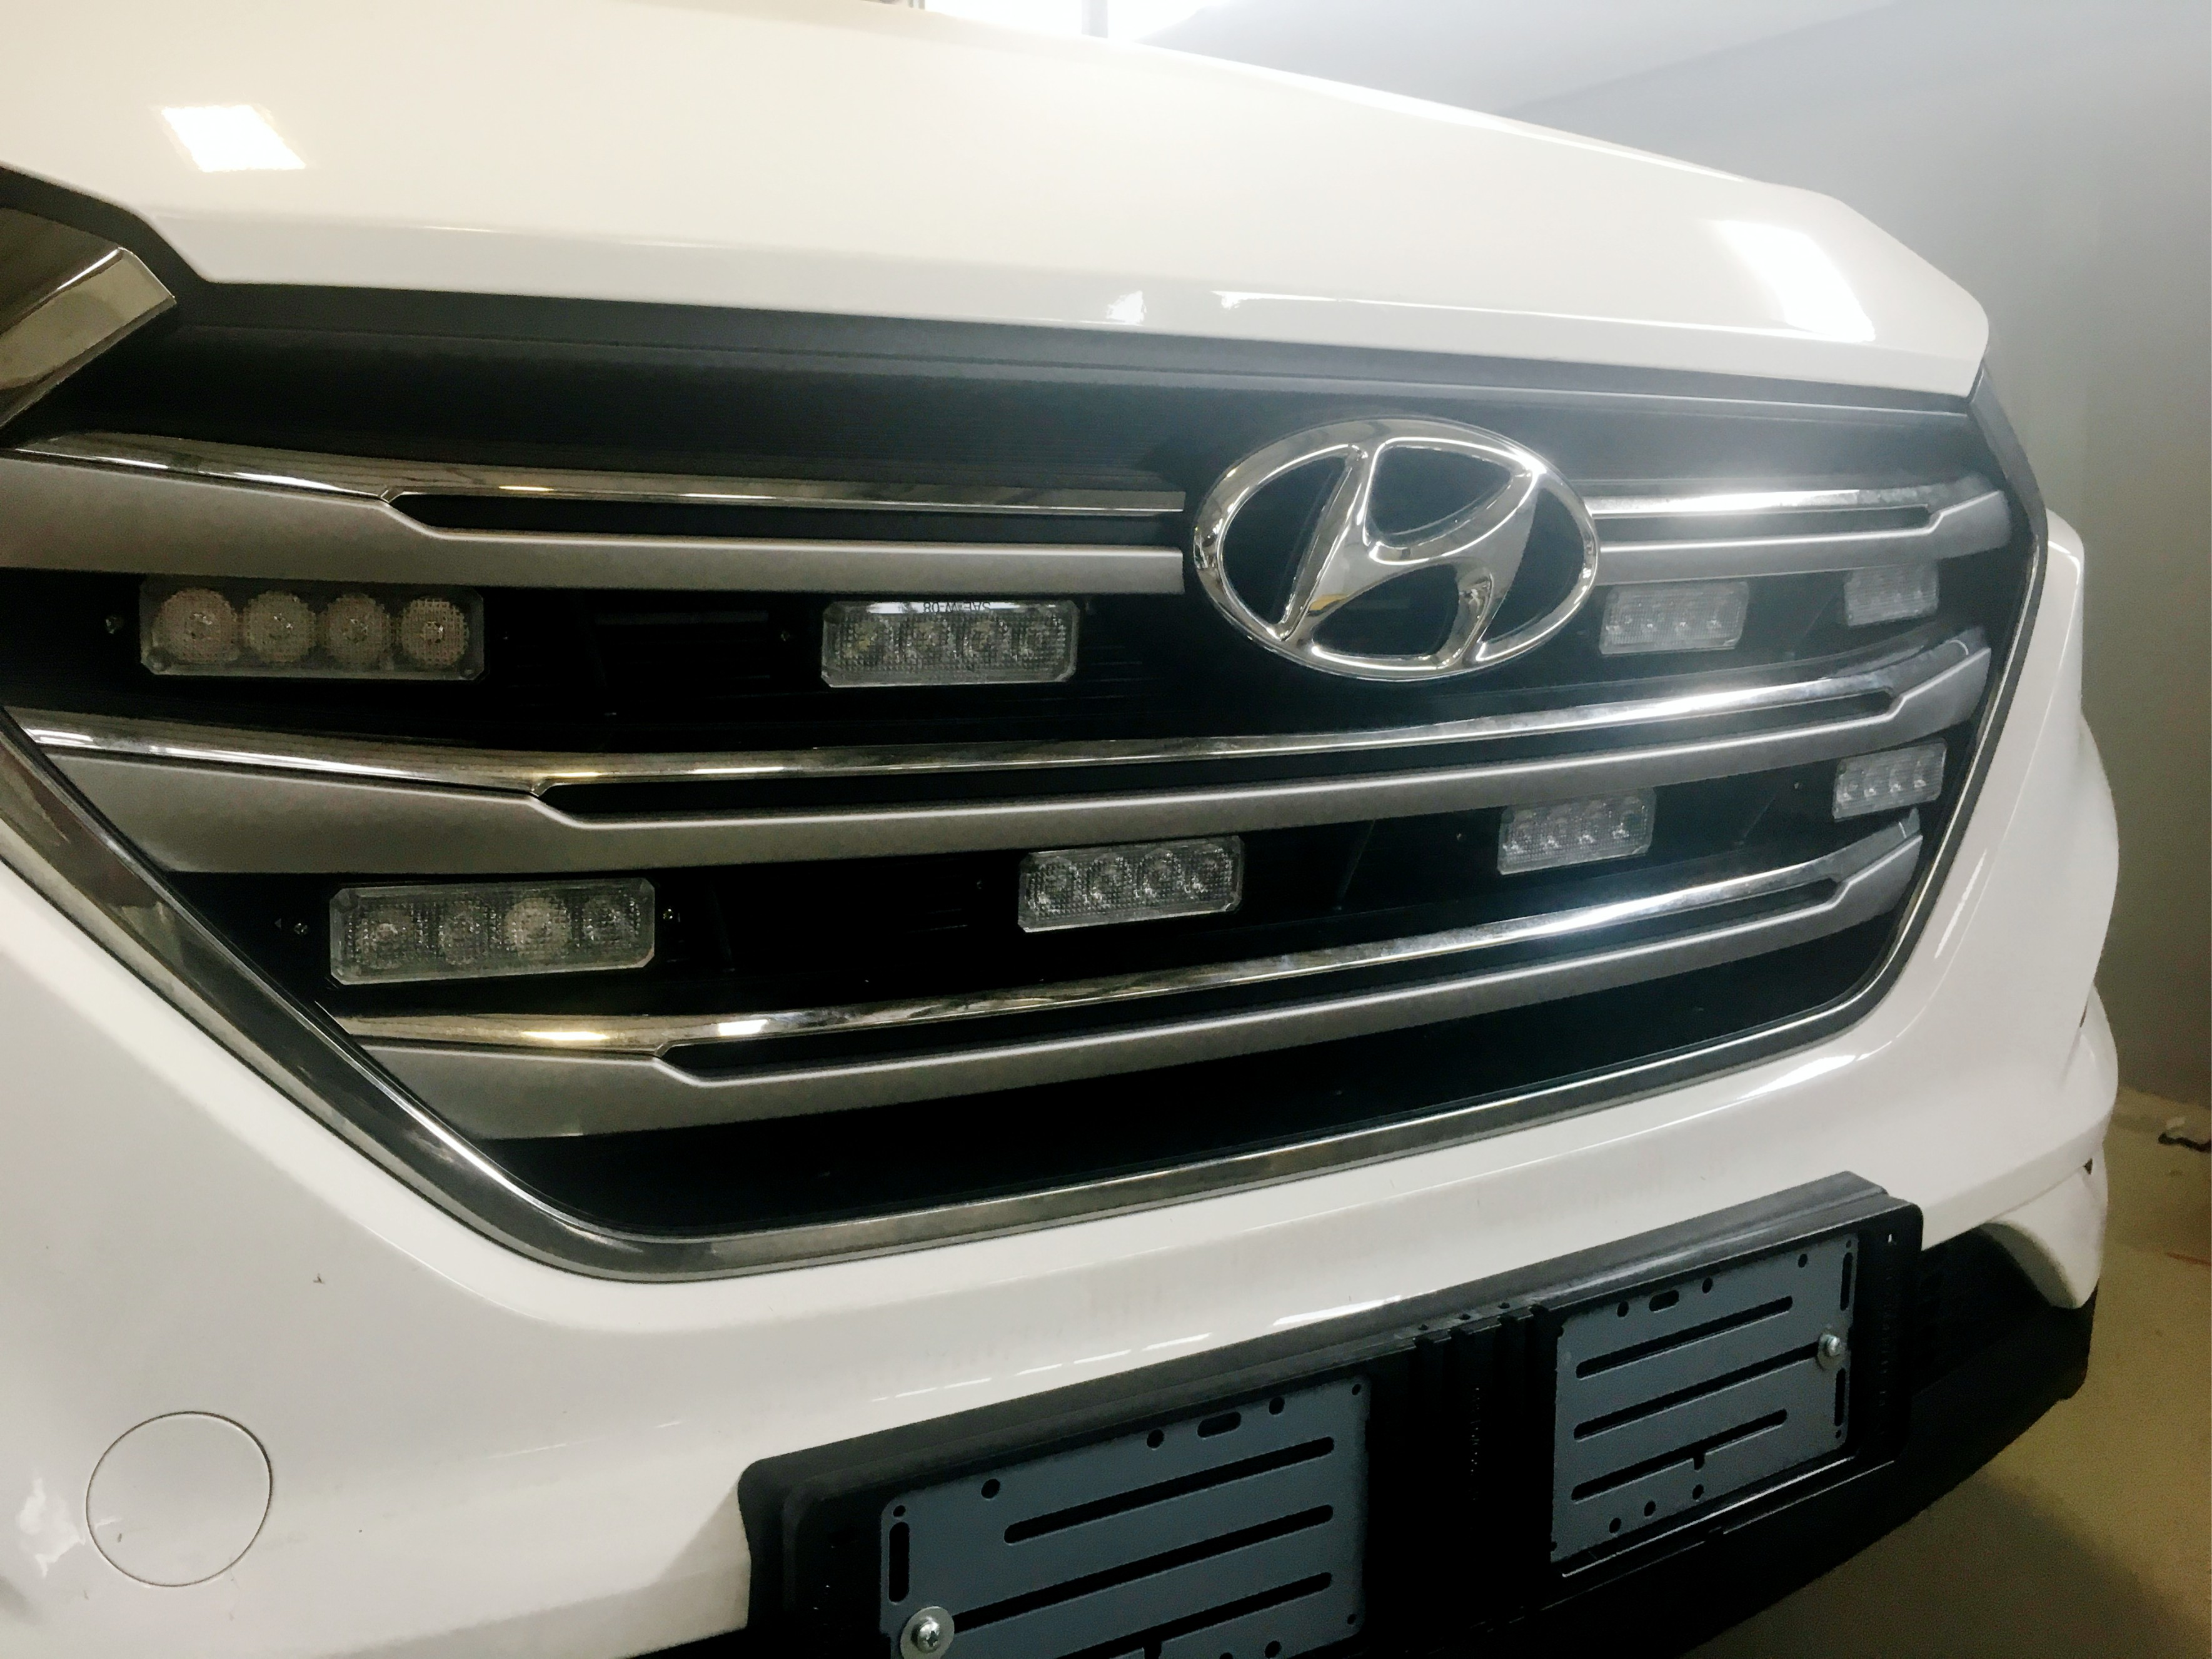 Medical Hyundai Grill Lights OFF